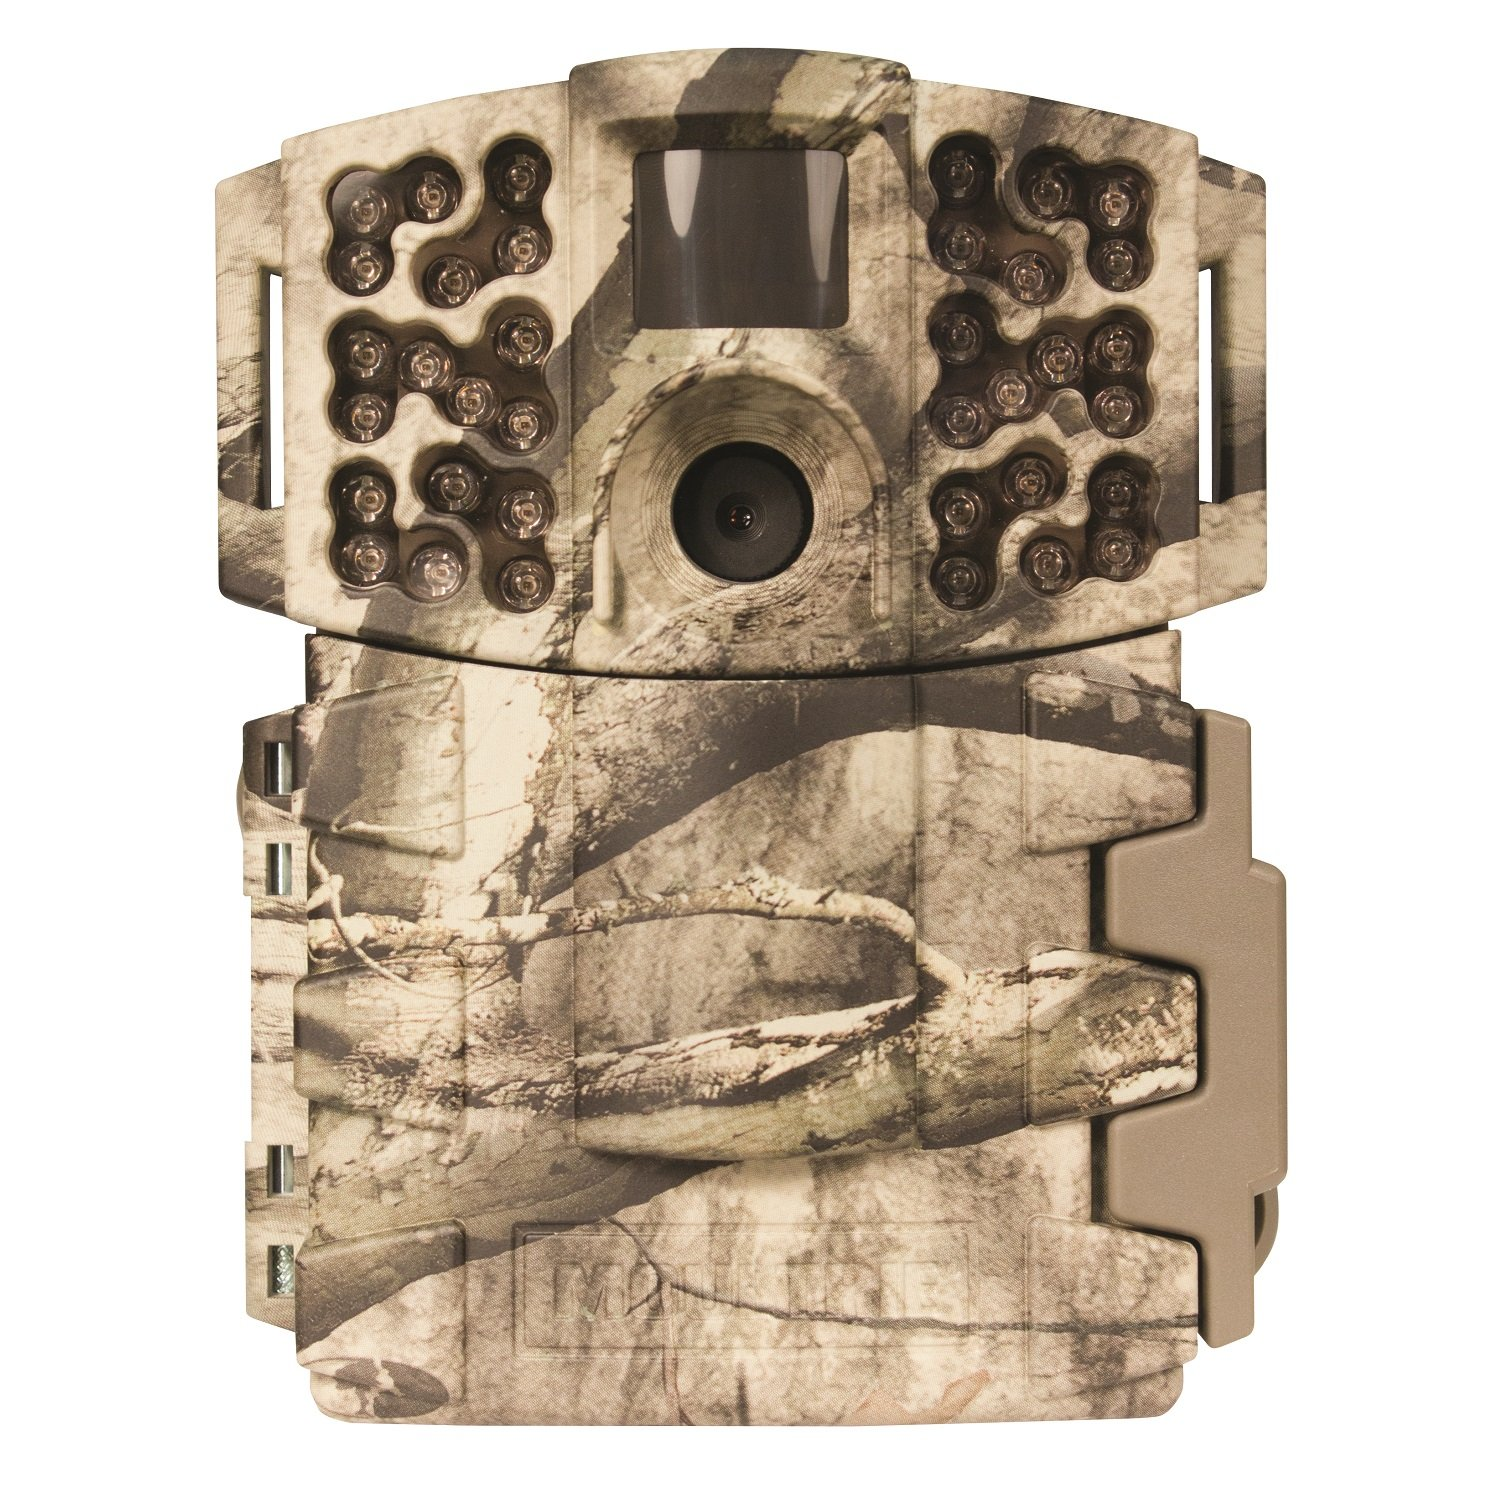 Best Moultrie Trail Cameras - Best Game cameras